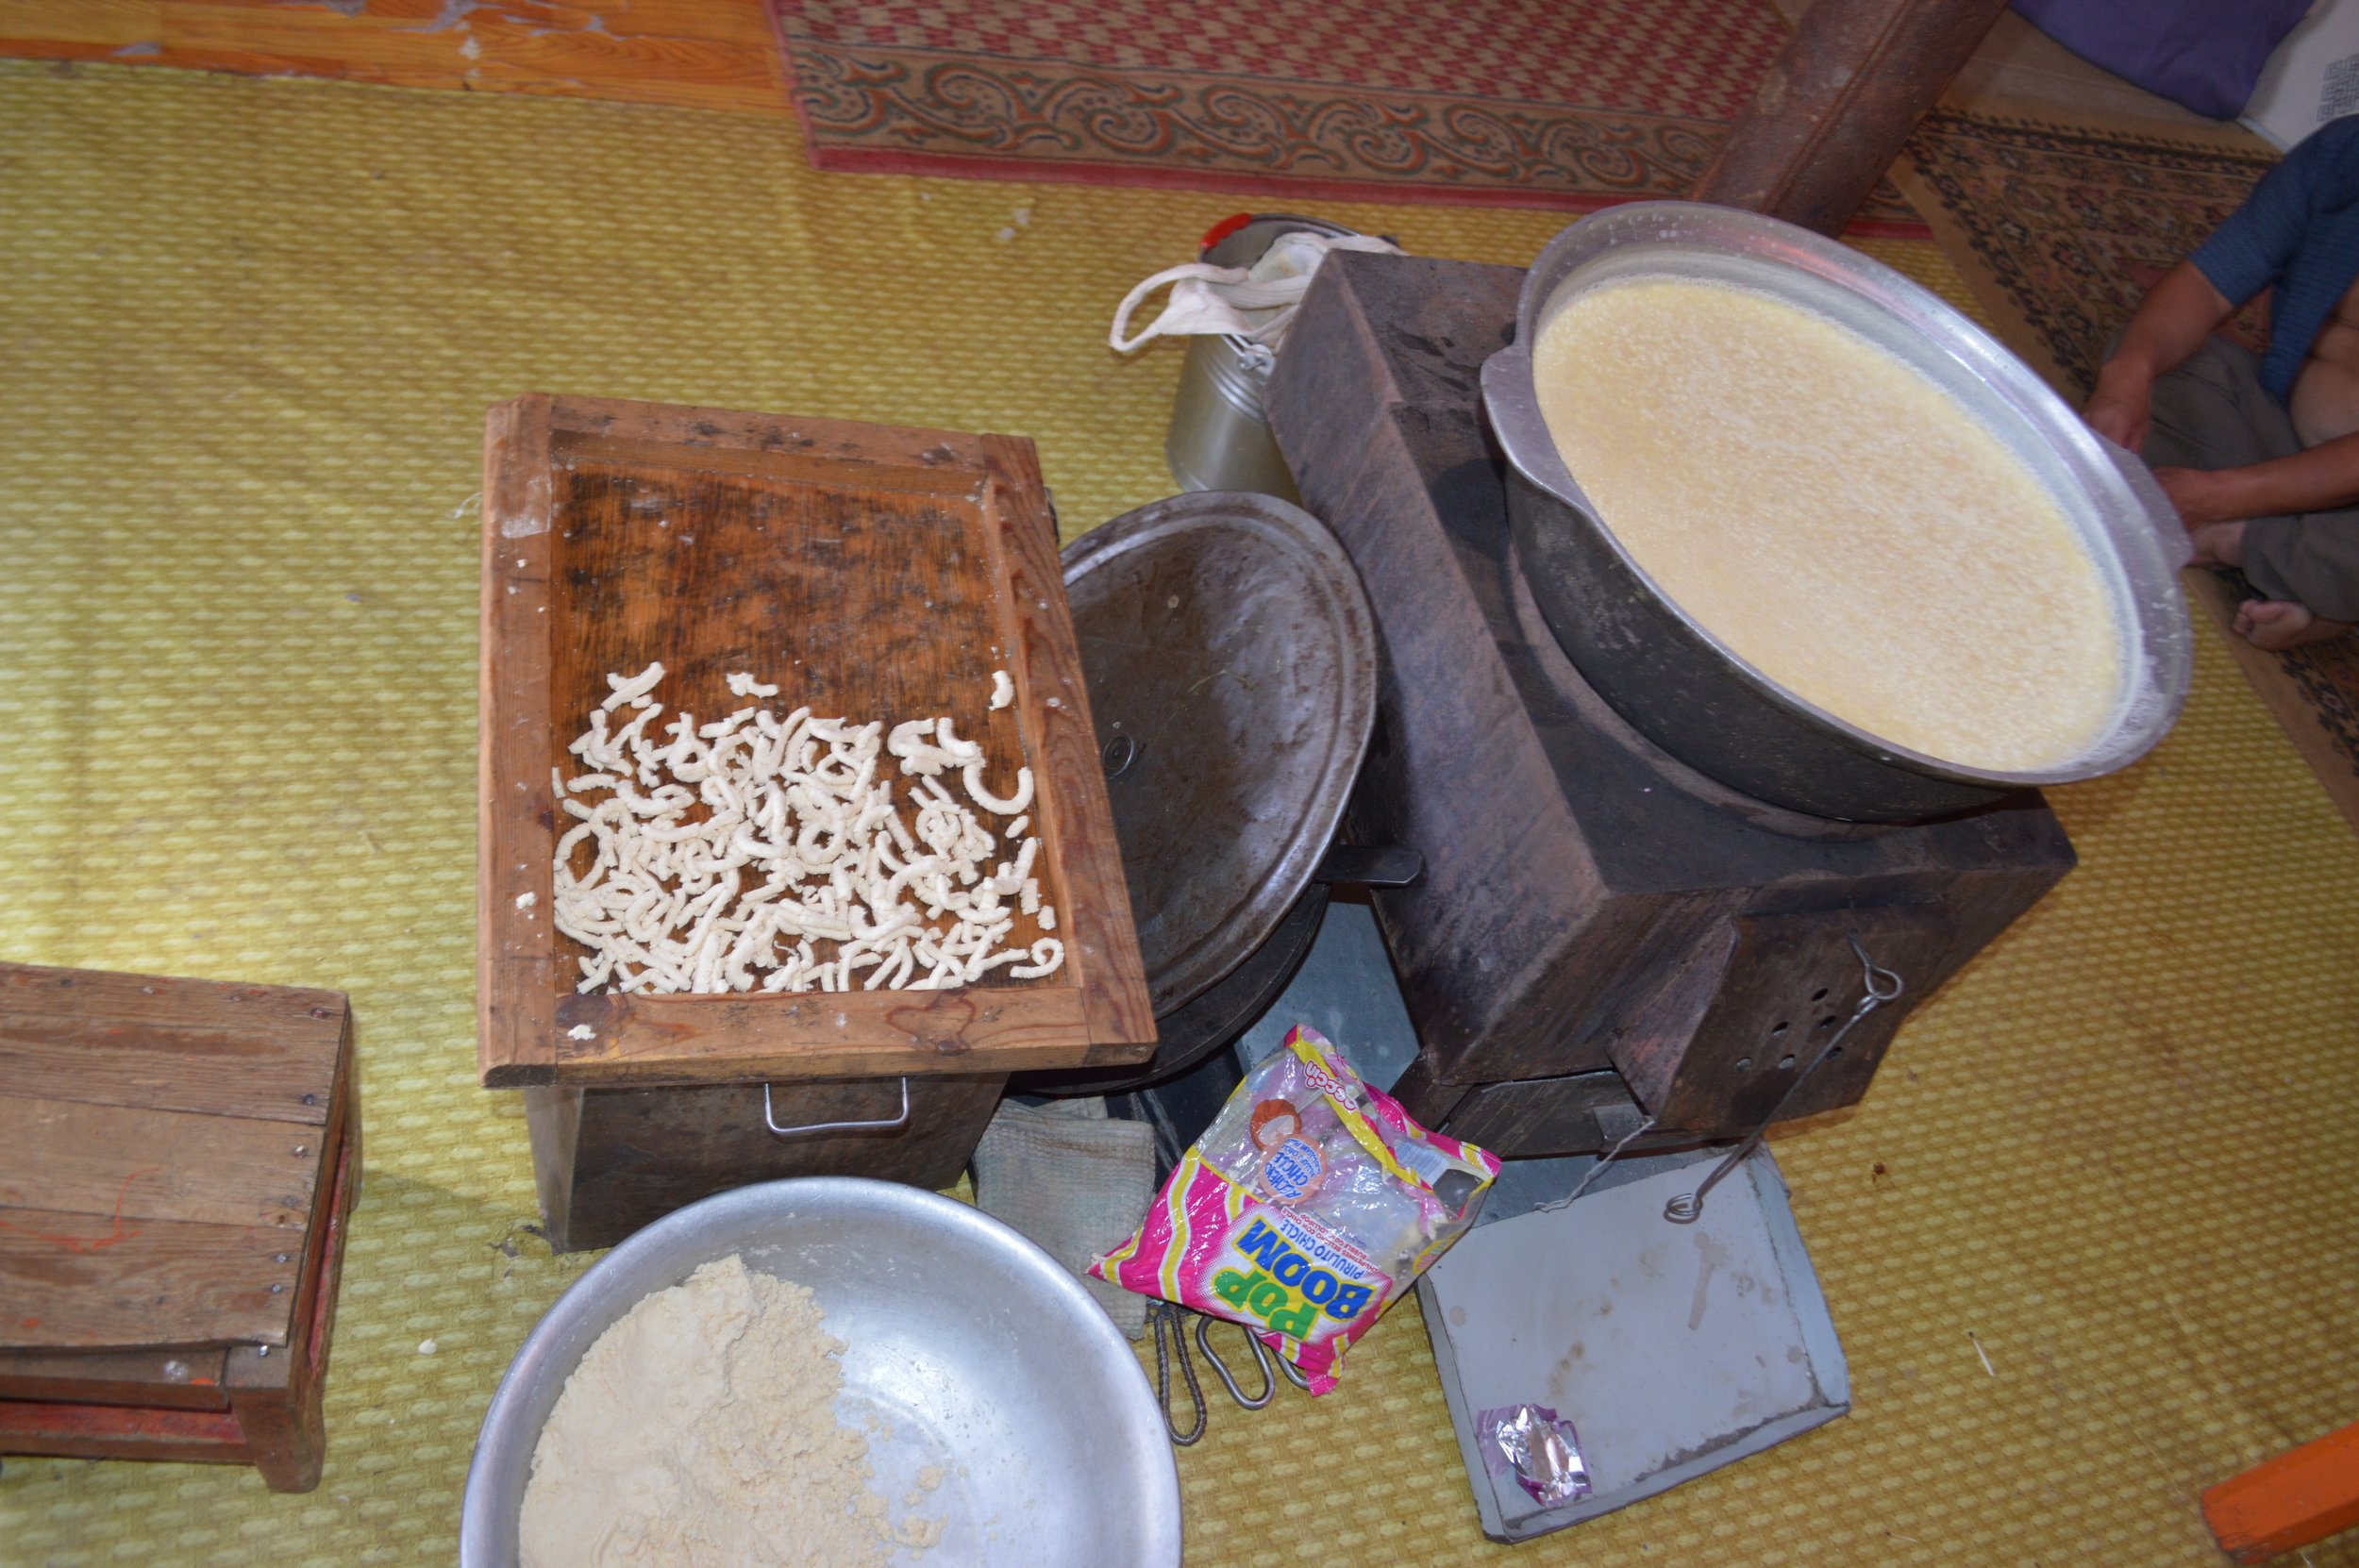 Small pieces of milk curd and milk products